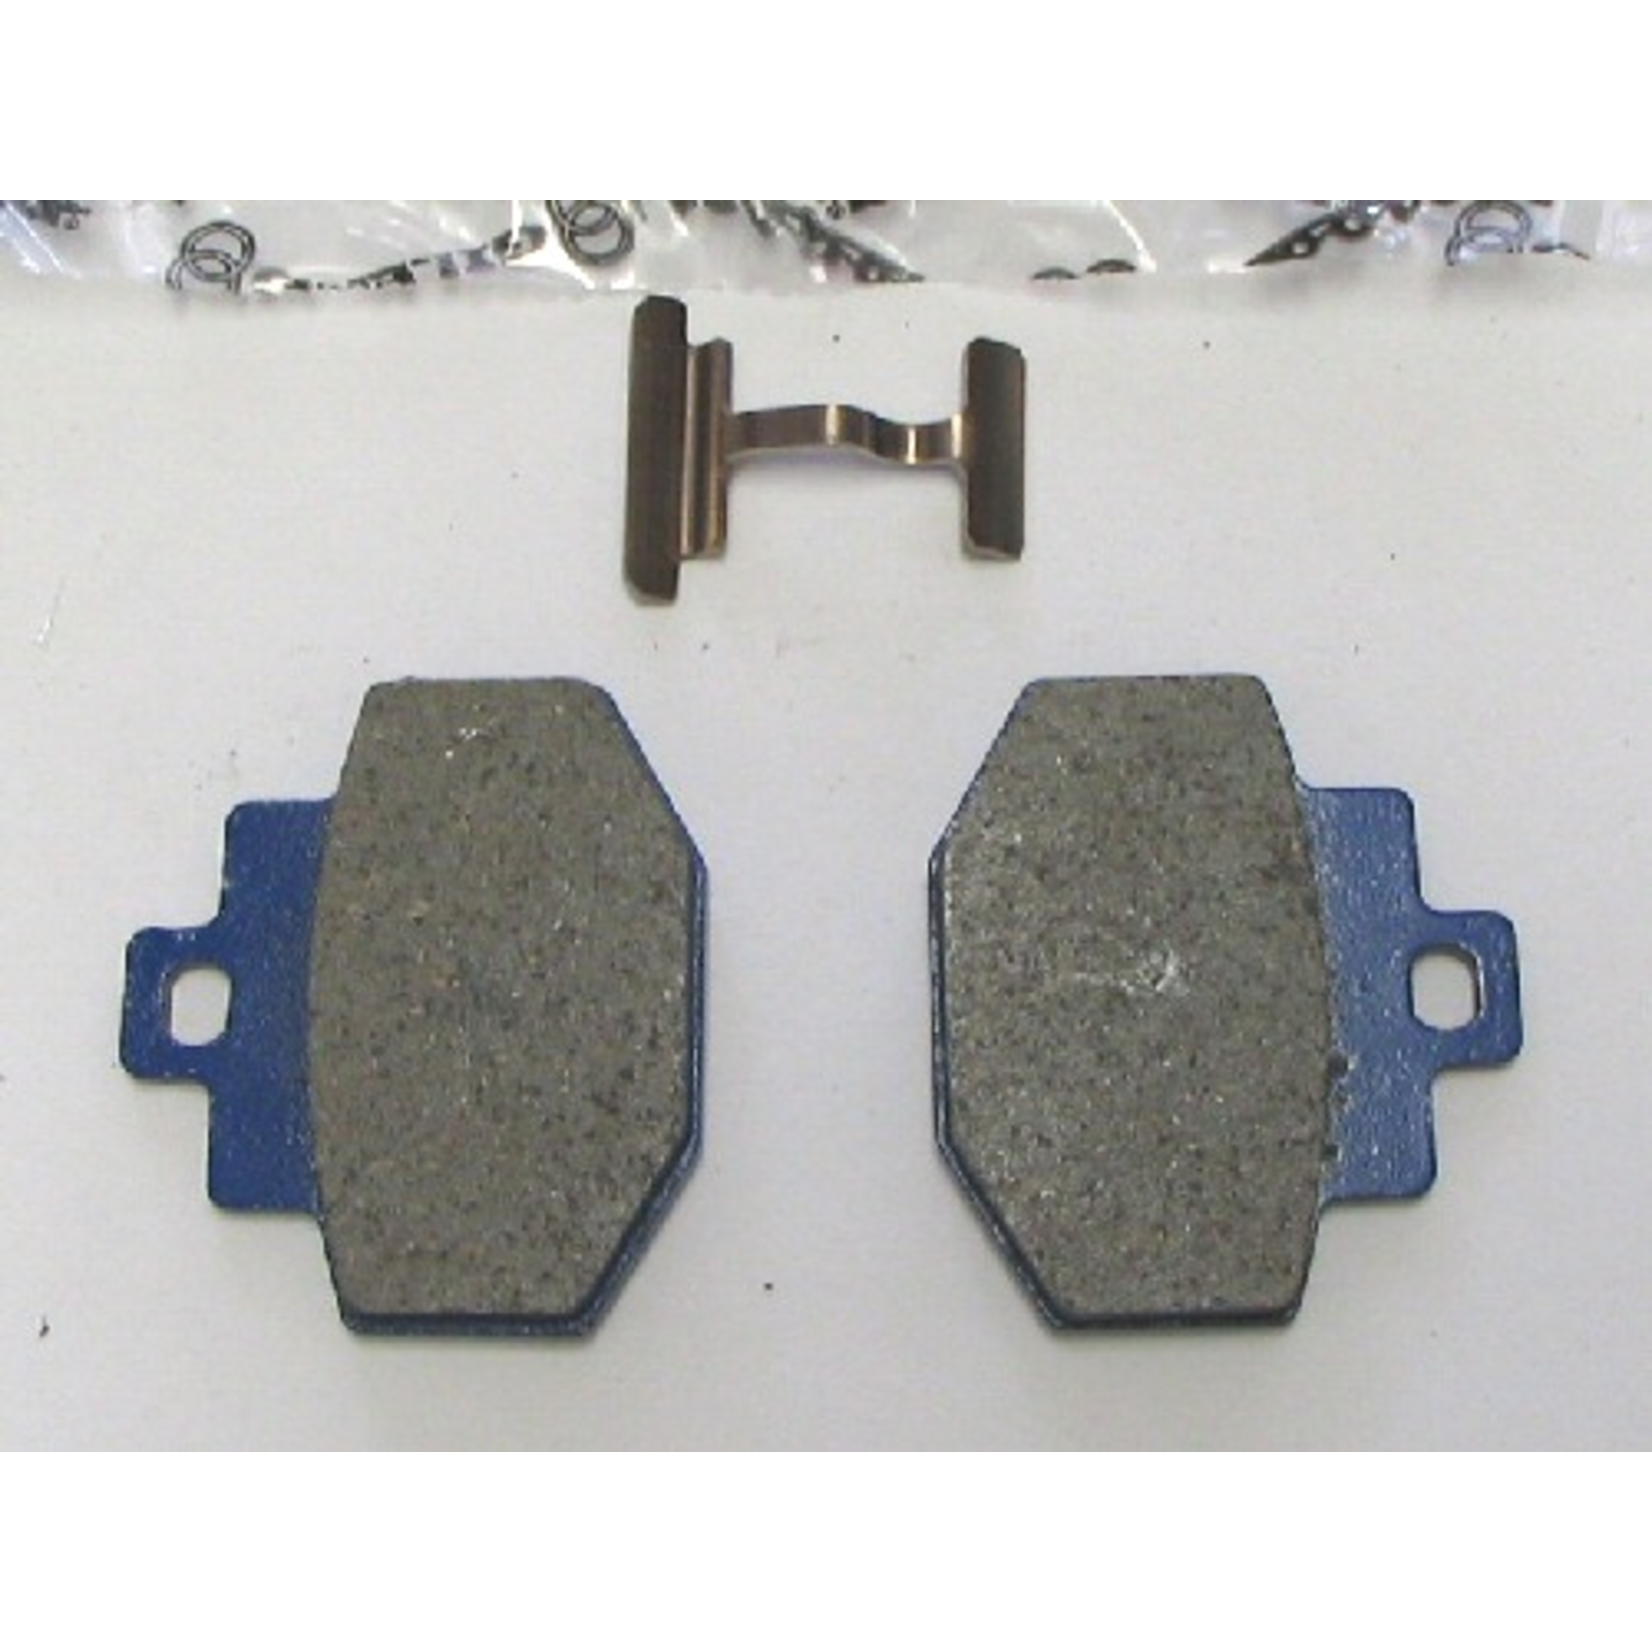 Parts Brake Pads, Rear GT GTS GTV GT60 GTS Super (647161)